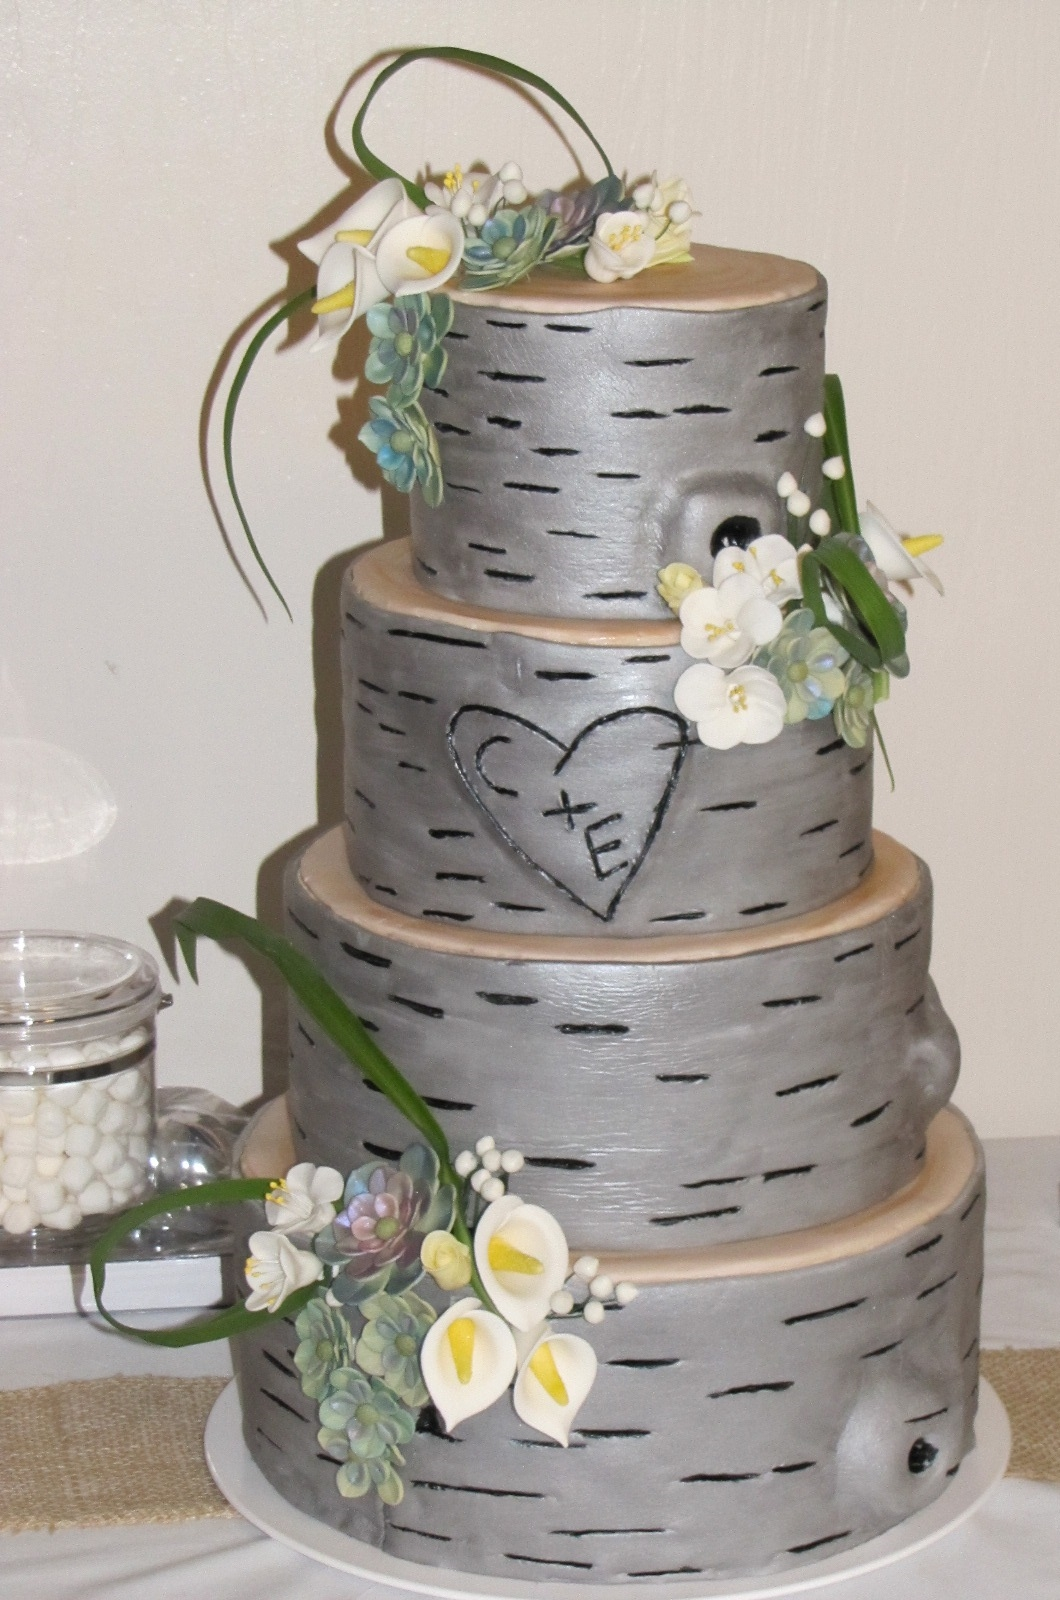 A Bride Brought Me A Picture Of A Birch Tree Cake On Pinterest I Tried To Replicate It This Is What I Came Up With It Is Decorated In Fon